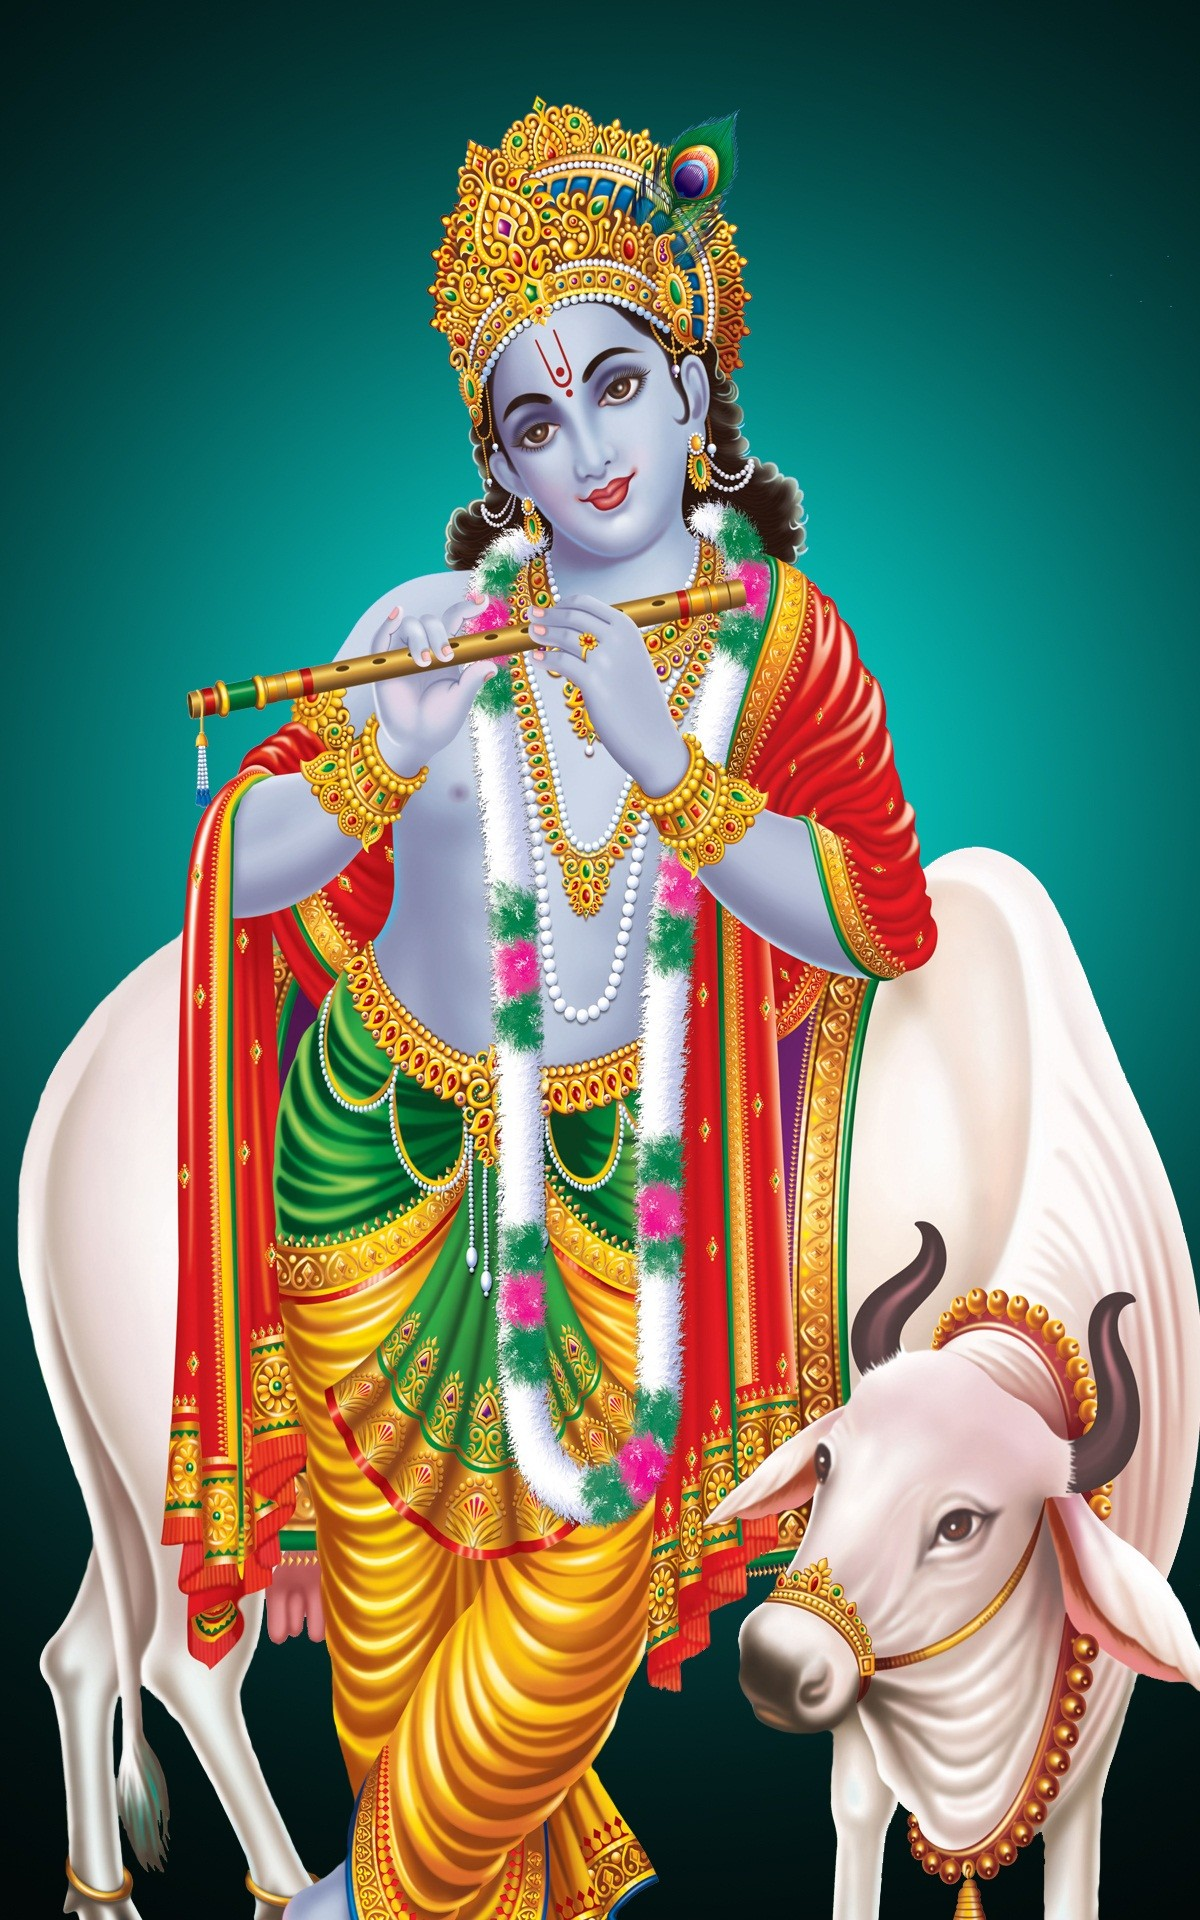 character of krishna Krishna the central character of the novel is an english teacher at the same college he attended as an under graduate student krishna's wife susila is with her parents, some miles away as she had recently given birth to their daughter leela.